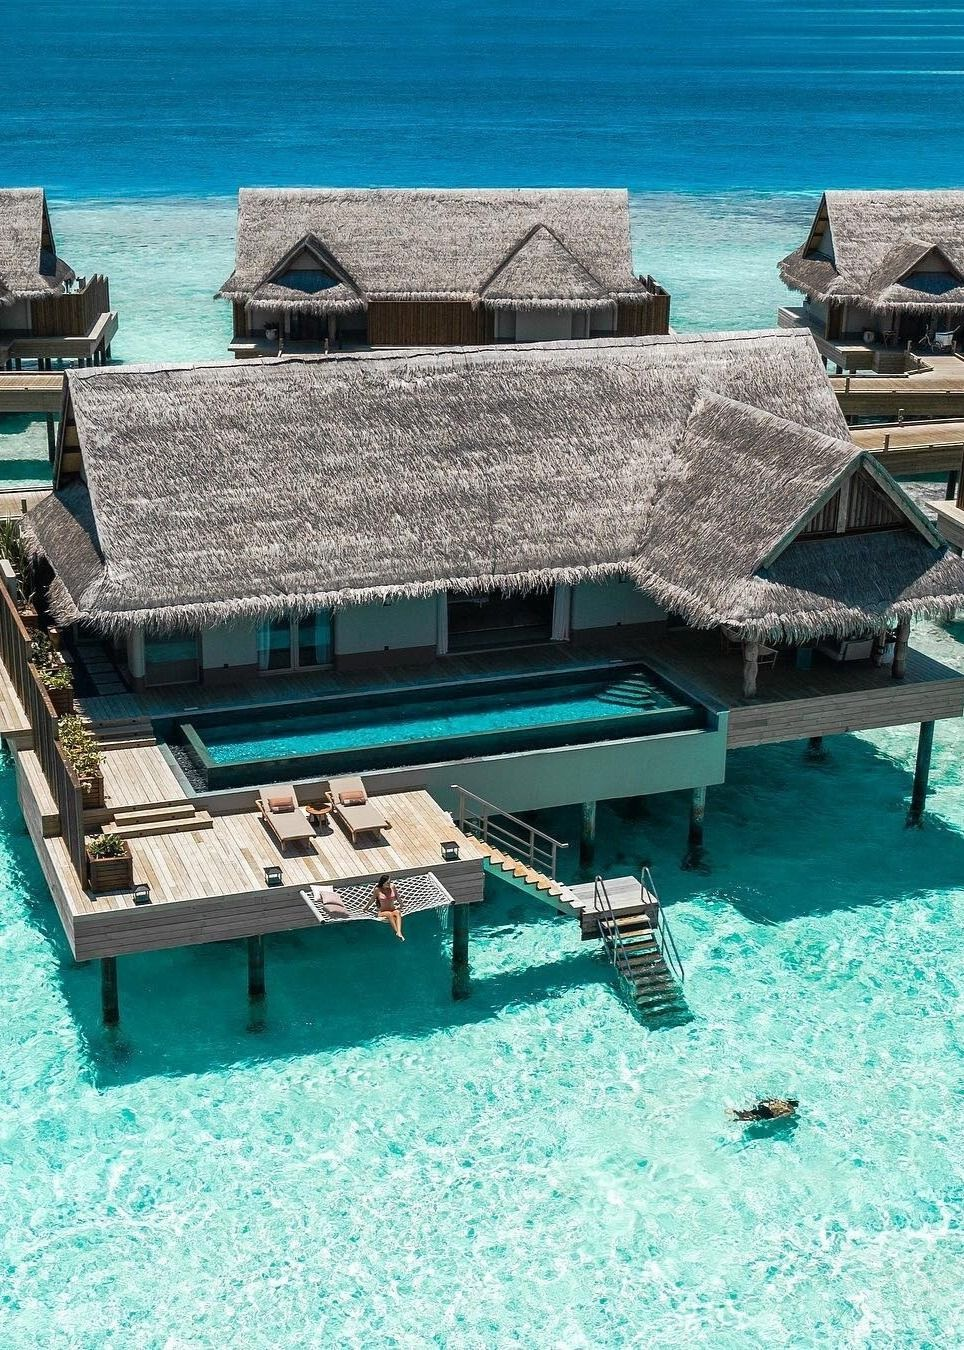 20 Amazing Hotels In Striking Locations You Must Visit Beaches